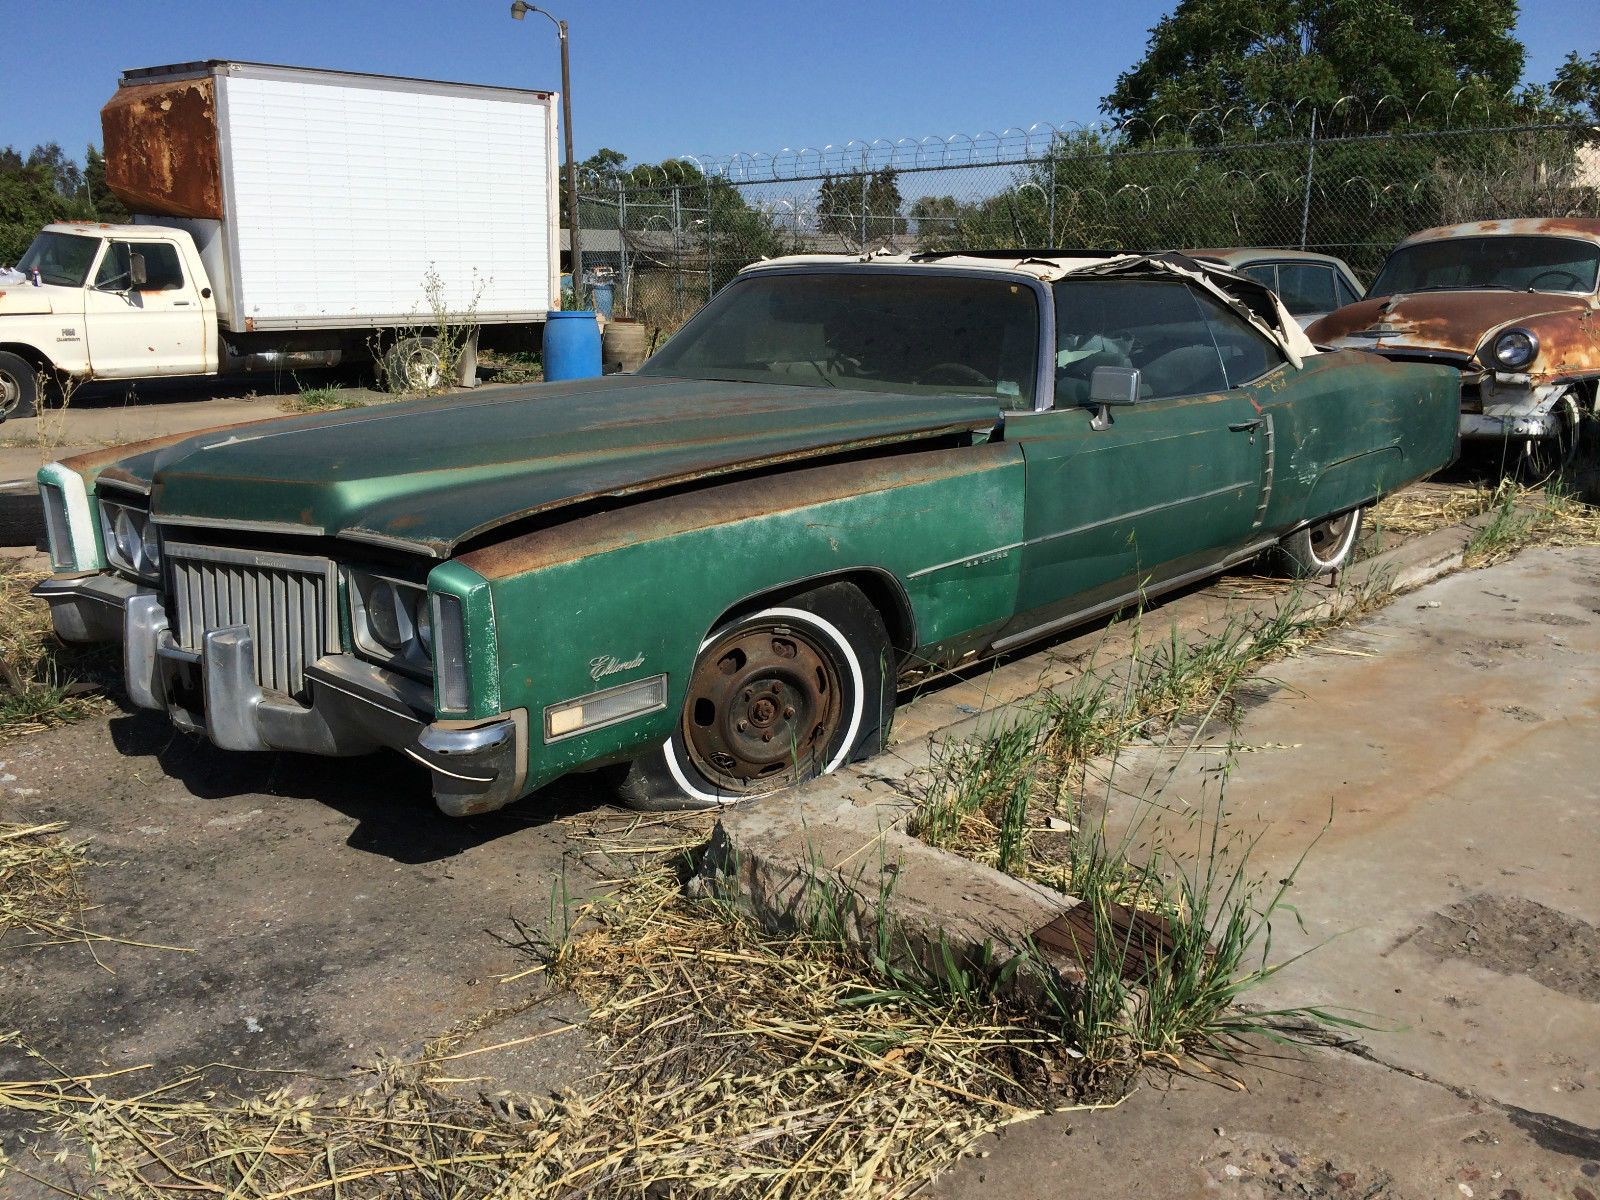 1971 Eldorado Convertible | Barn Finds,Junk Yard Cars etc ...